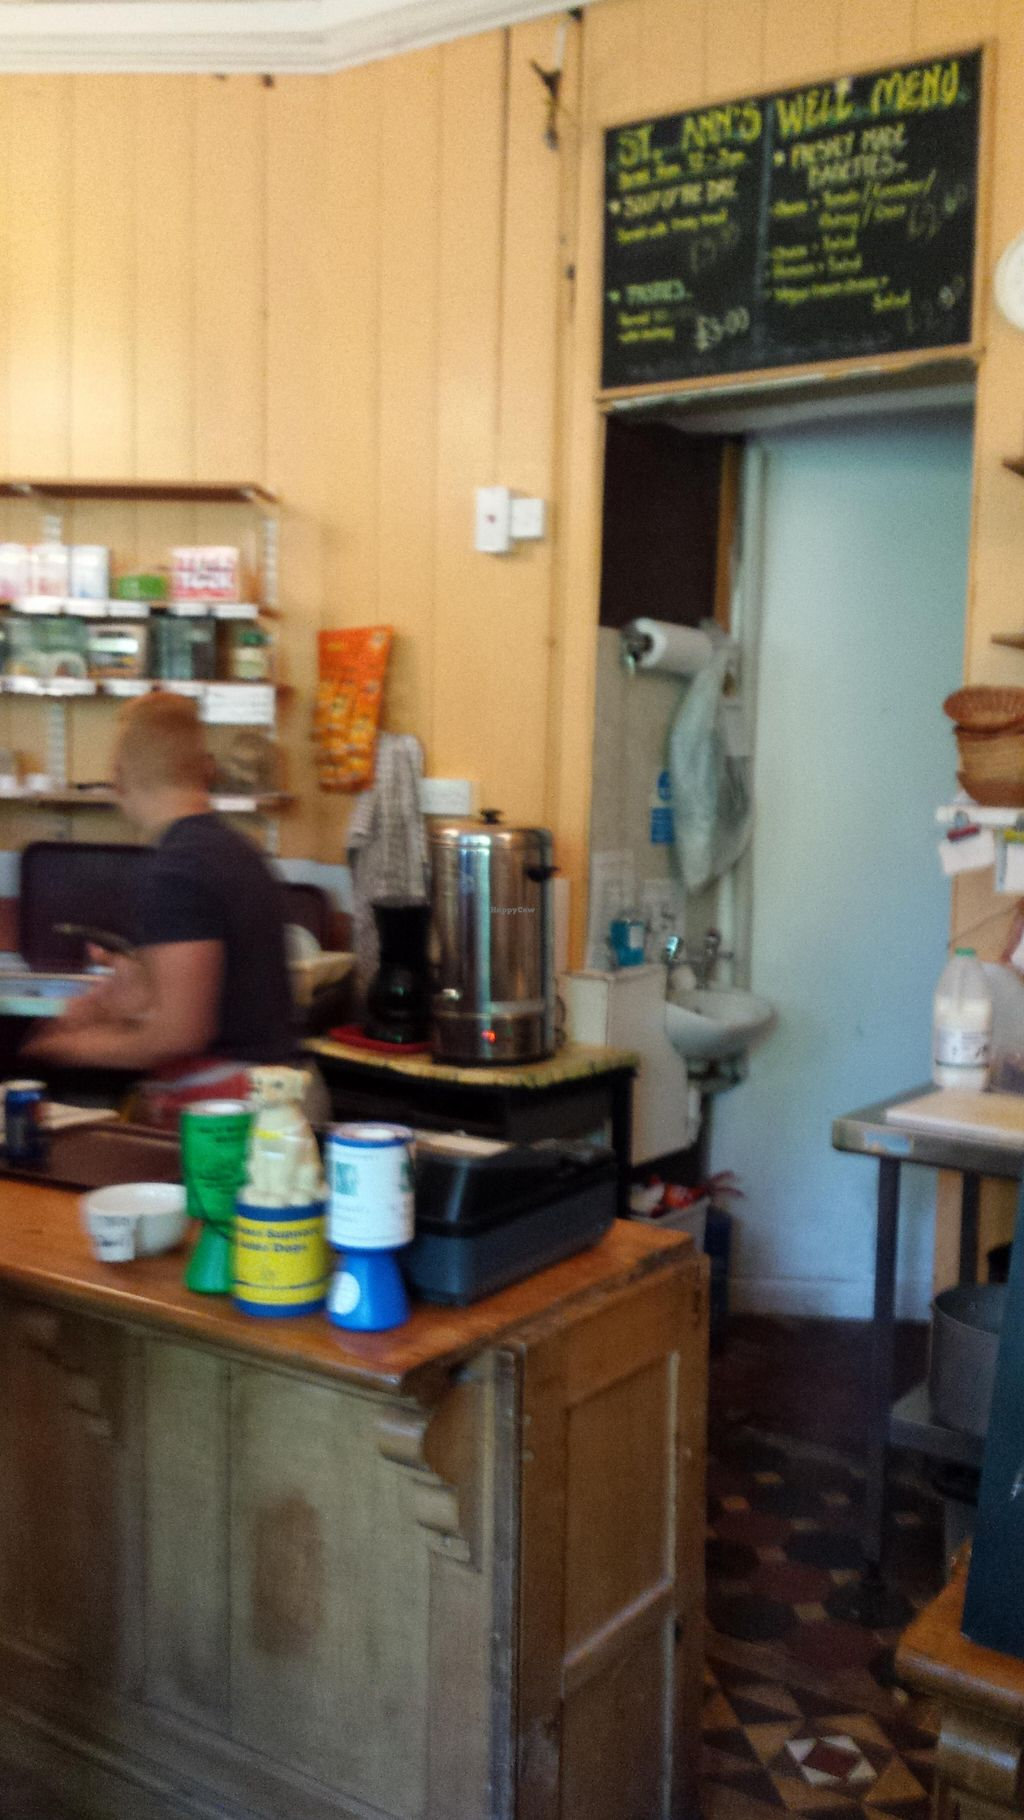 """Photo of St Ann's Well Cafe  by <a href=""""/members/profile/Good%20for%20Vegans"""">Good for Vegans</a> <br/>Counter <br/> September 6, 2015  - <a href='/contact/abuse/image/7100/116542'>Report</a>"""